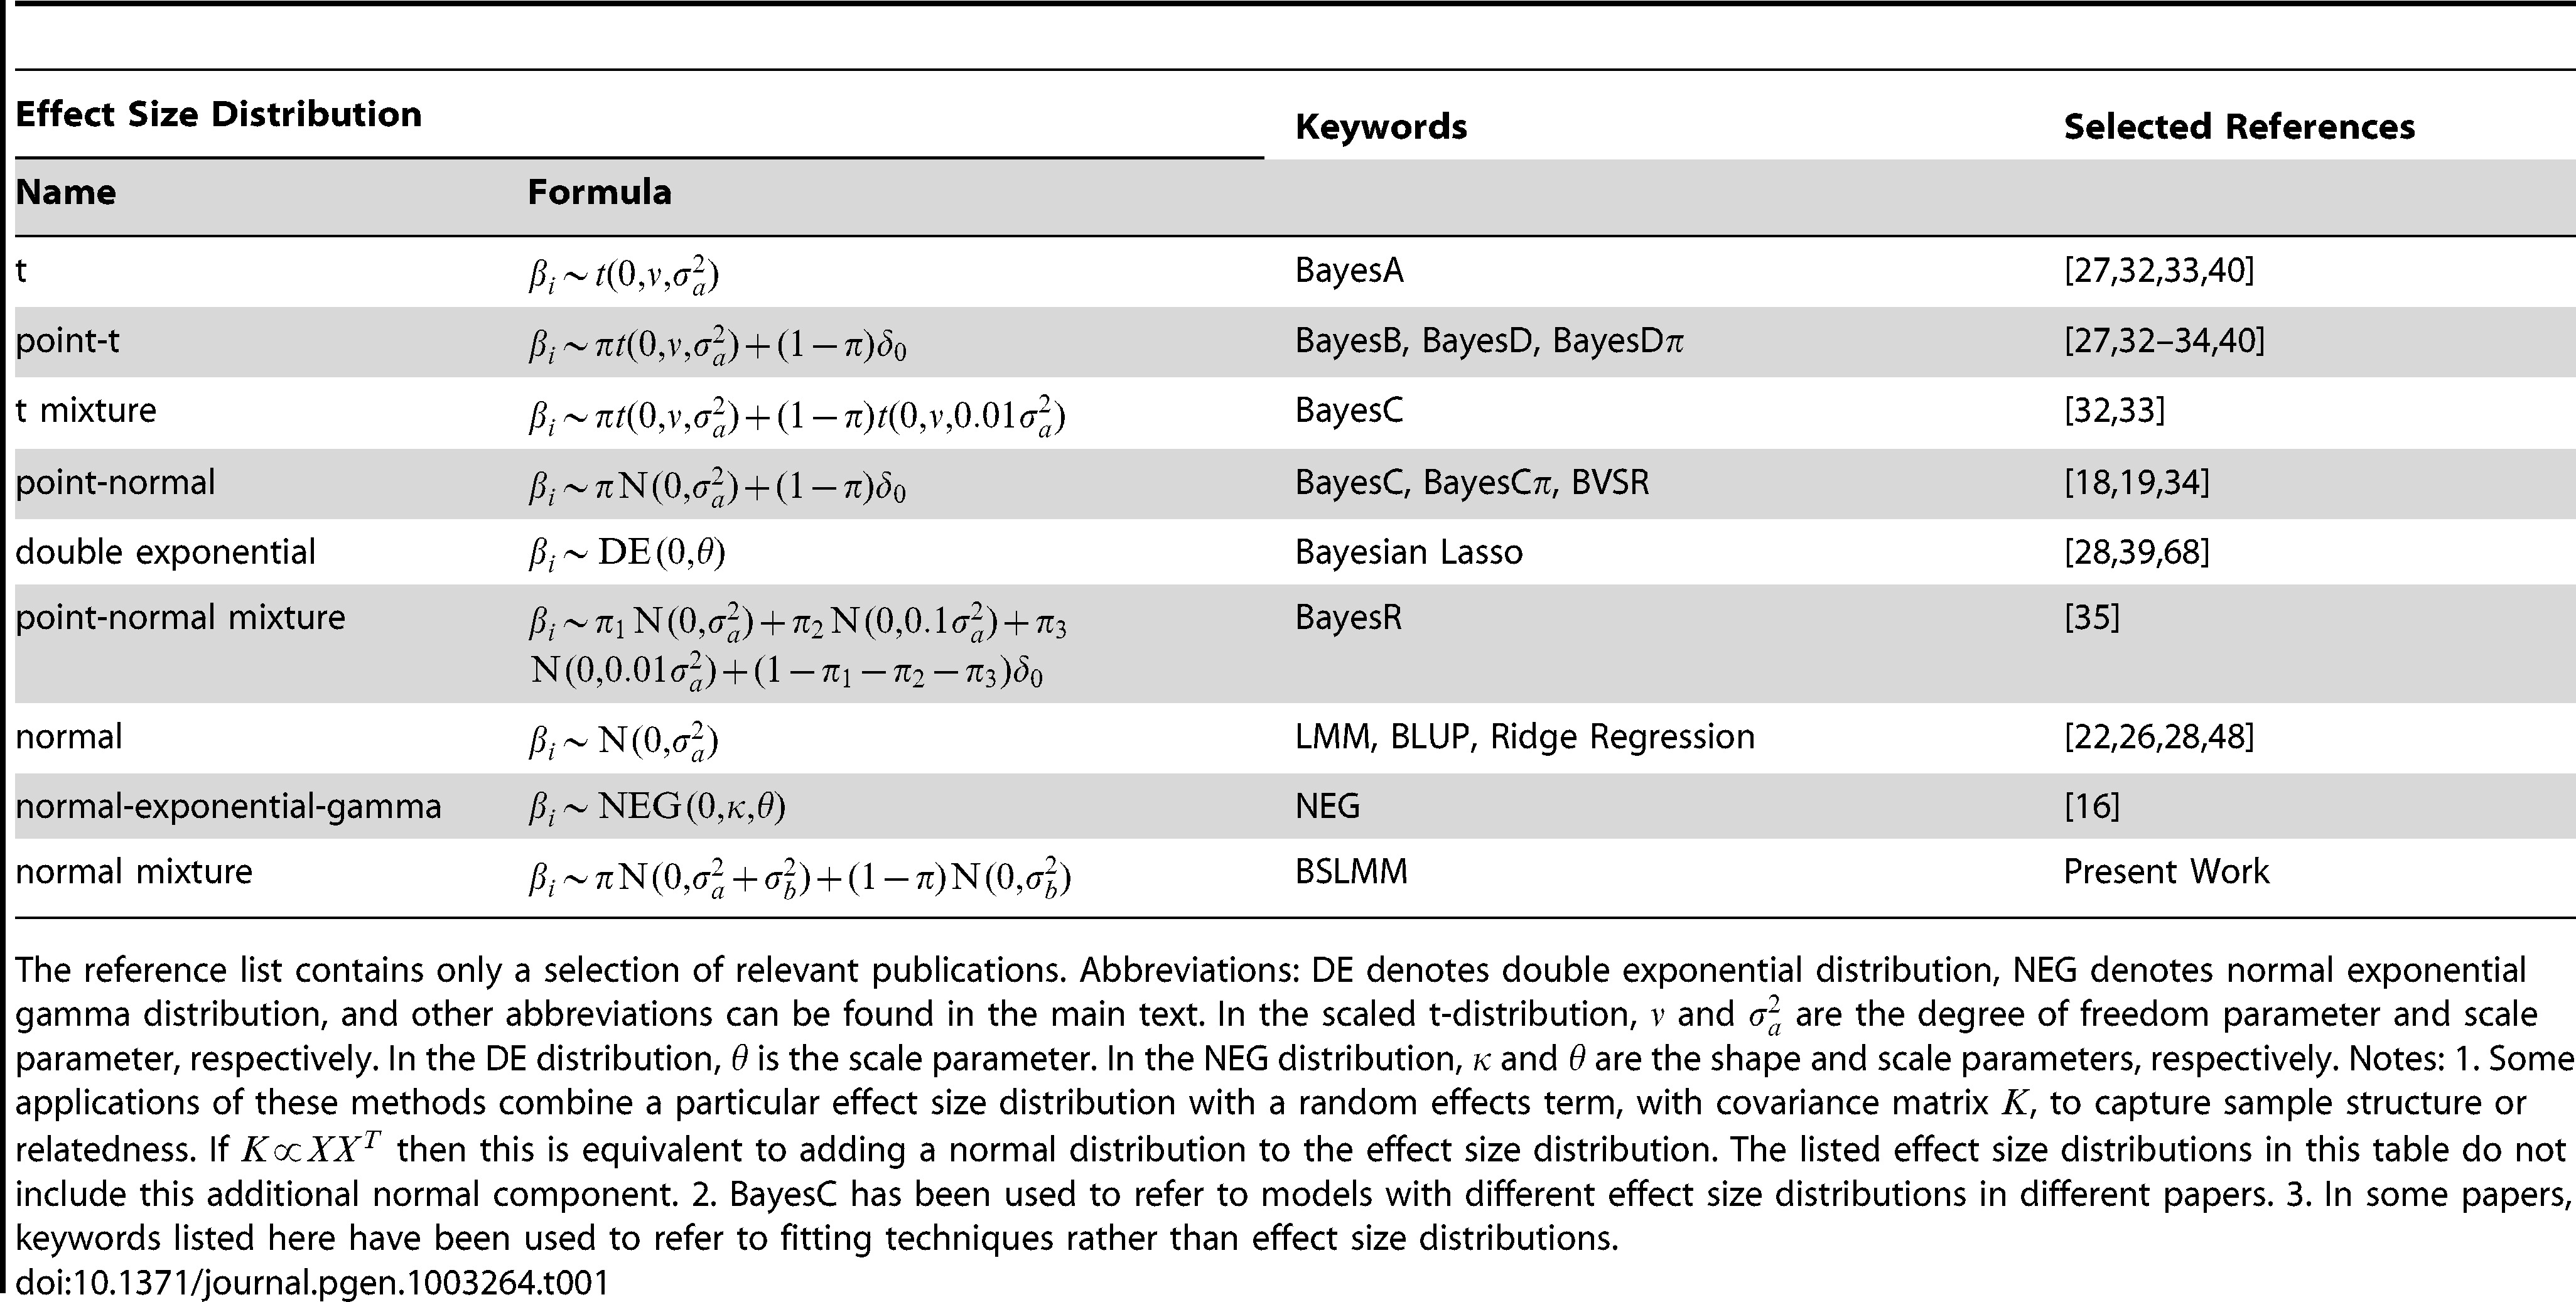 Summary of some effect size distributions that have been proposed for polygenic modeling.